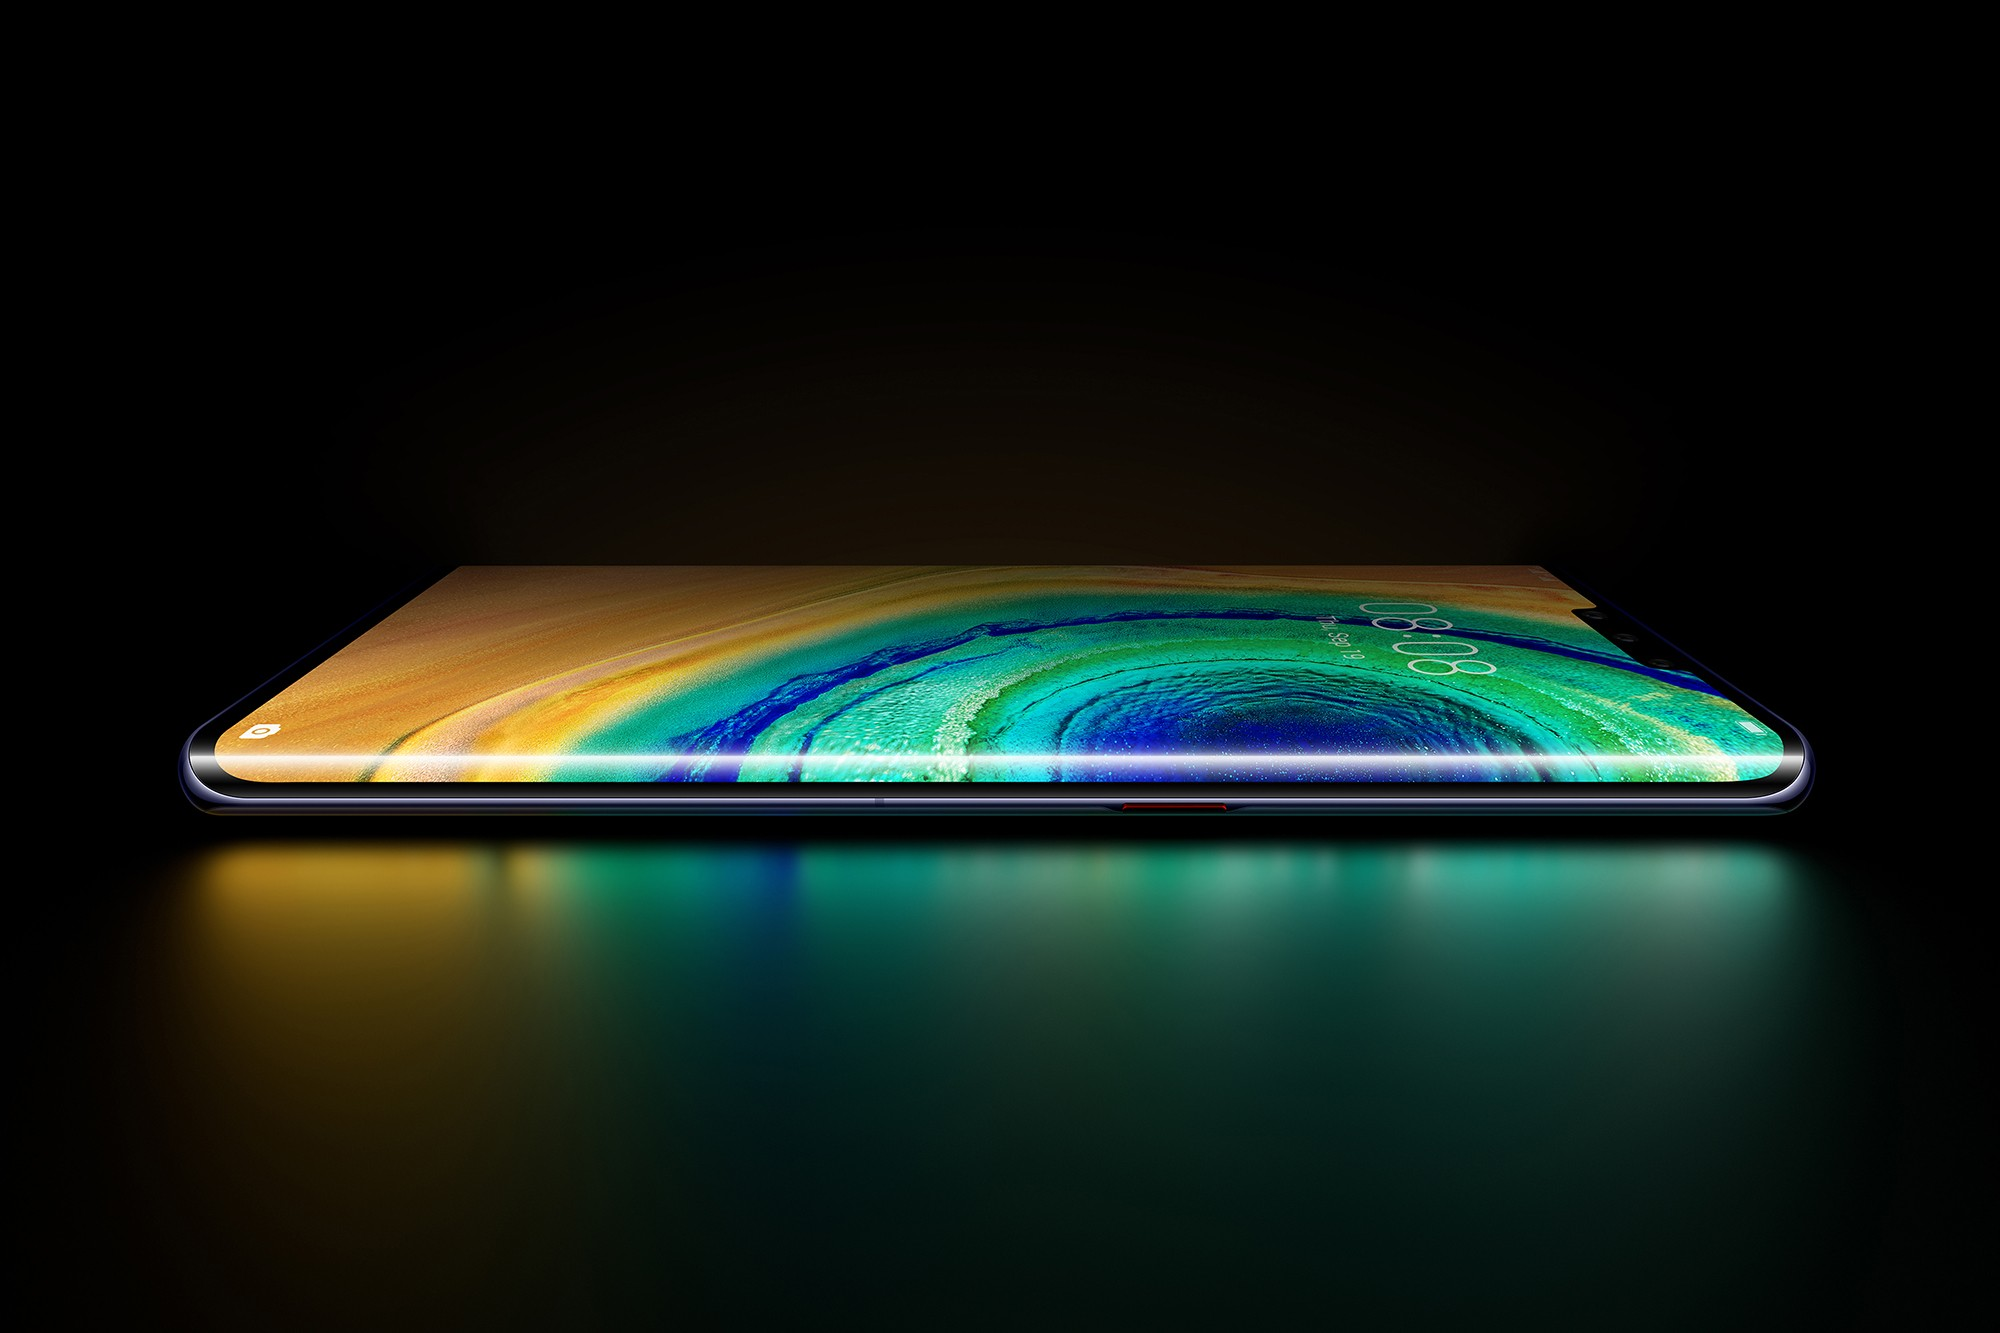 The Huawei Mate 30 Pro is being released in the UK